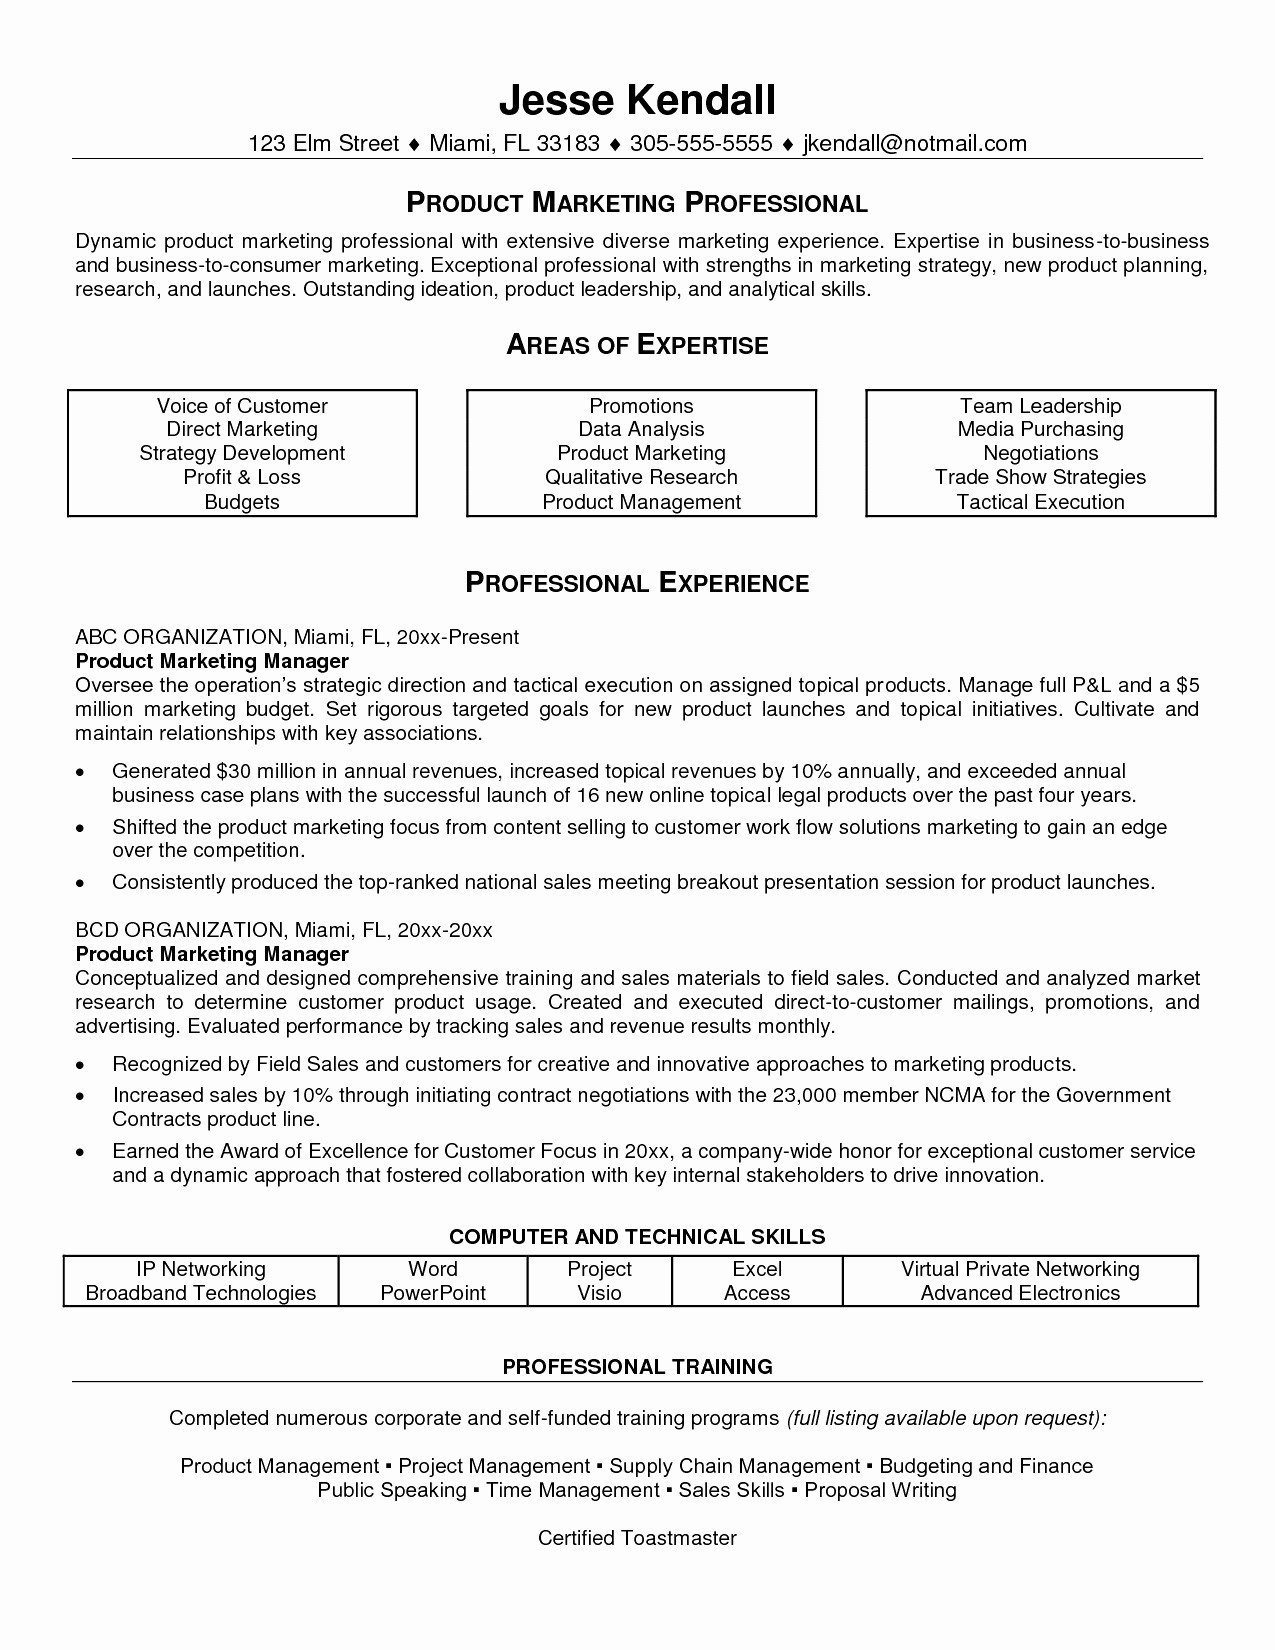 What Computer Skills to List On Resume - Puter Skills for Resume Fresh Puter Skills for Resume Beautiful